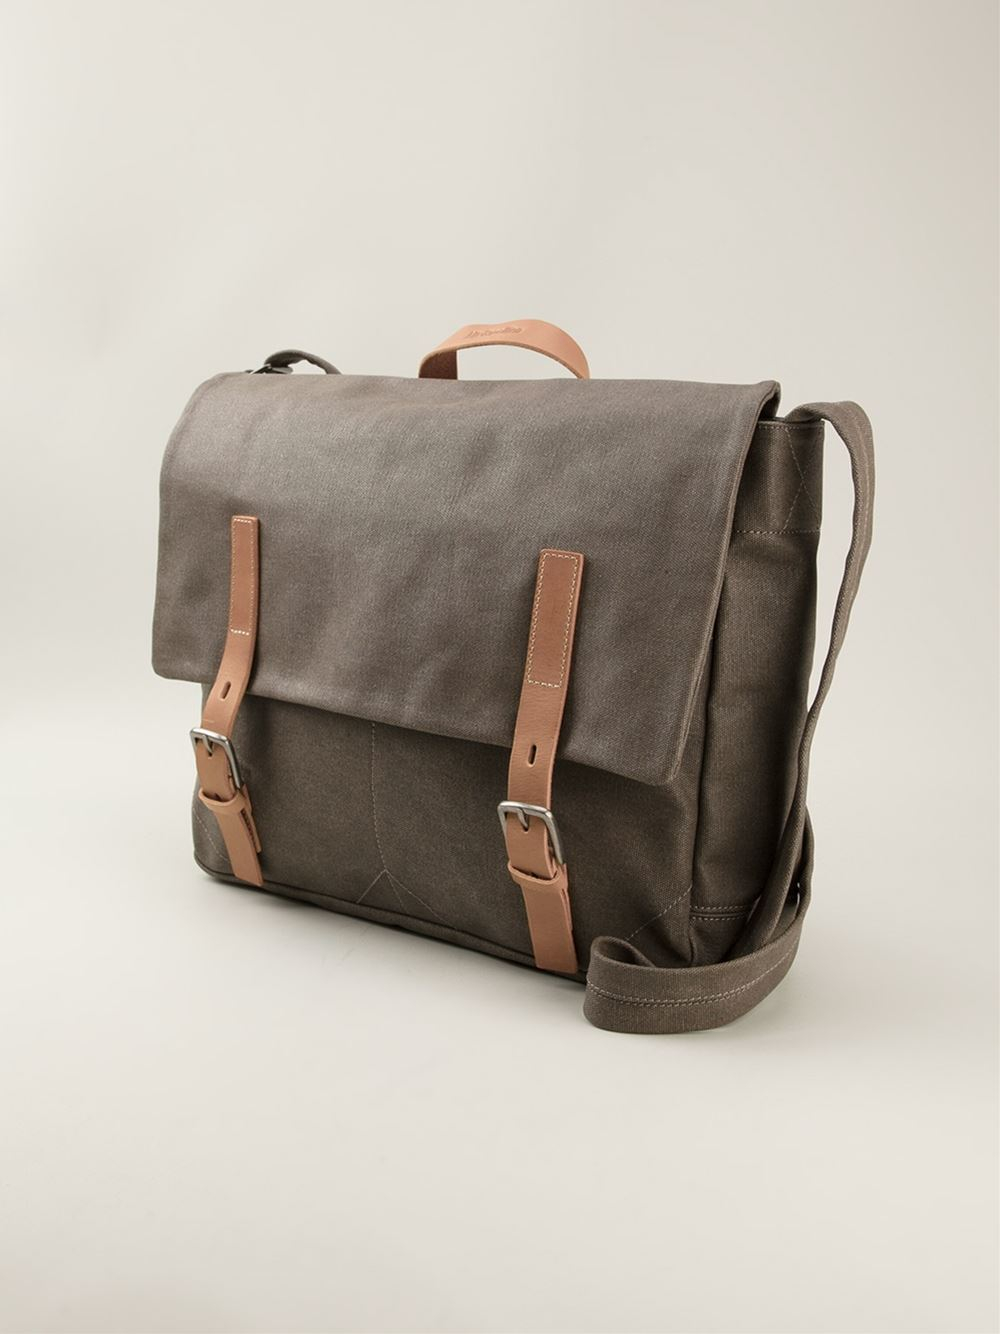 Ally Capellino Ben Satchel in Gray for Men - Lyst